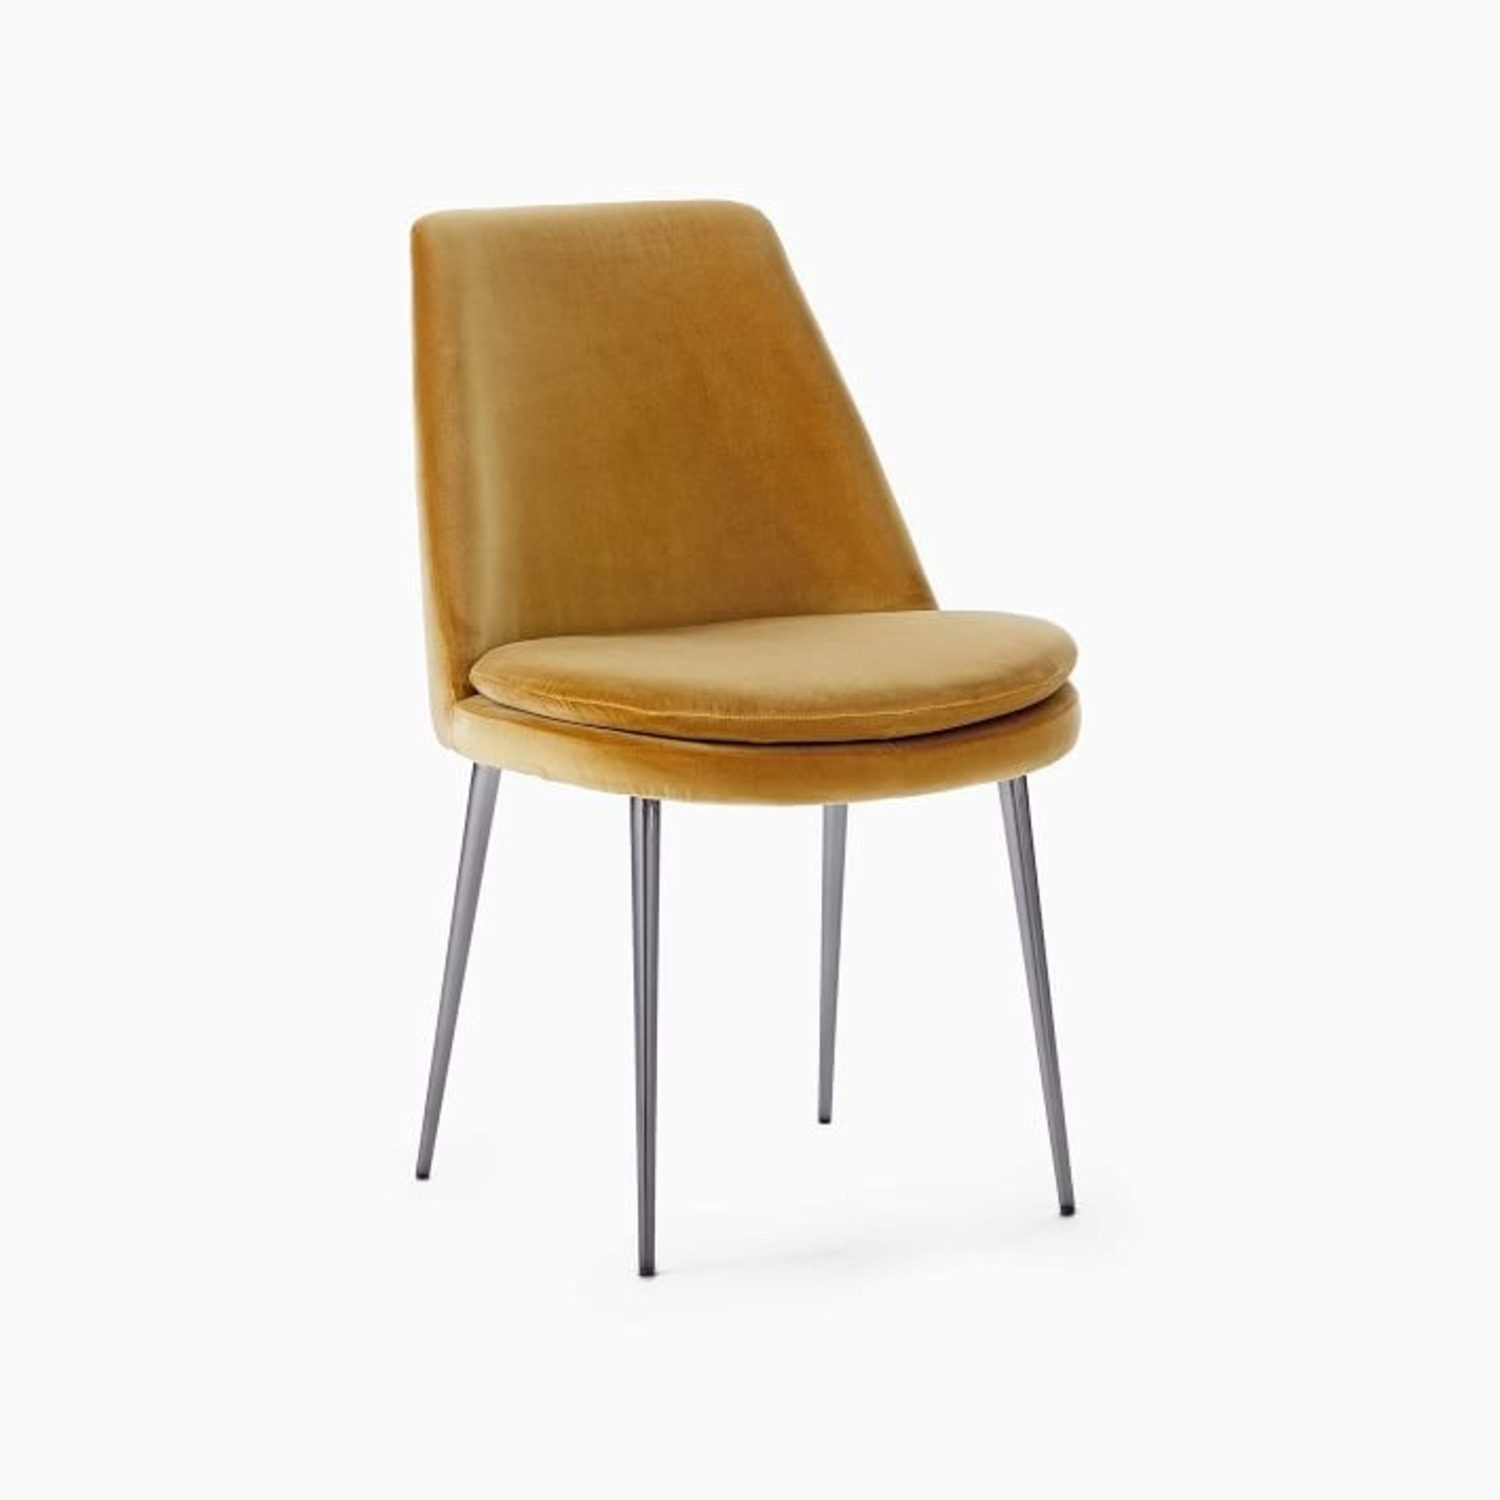 West Elm Finley Low-Back Upholstered Dining Chair - image-2